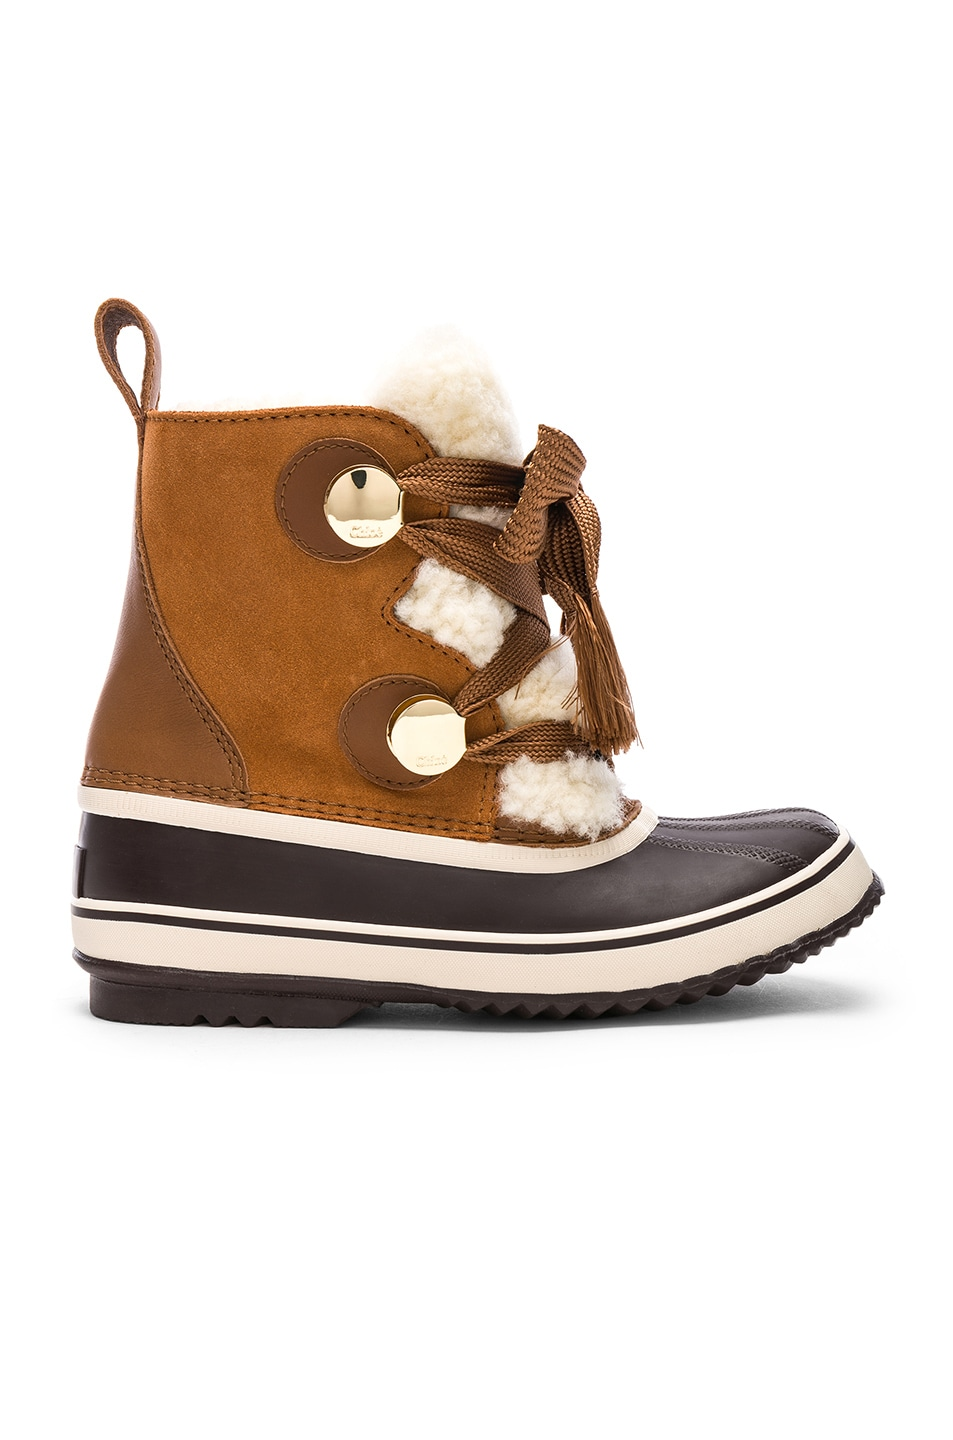 CHLOE X SOREL SHEARLING & SUEDE HIKING BOOTS IN BROWN